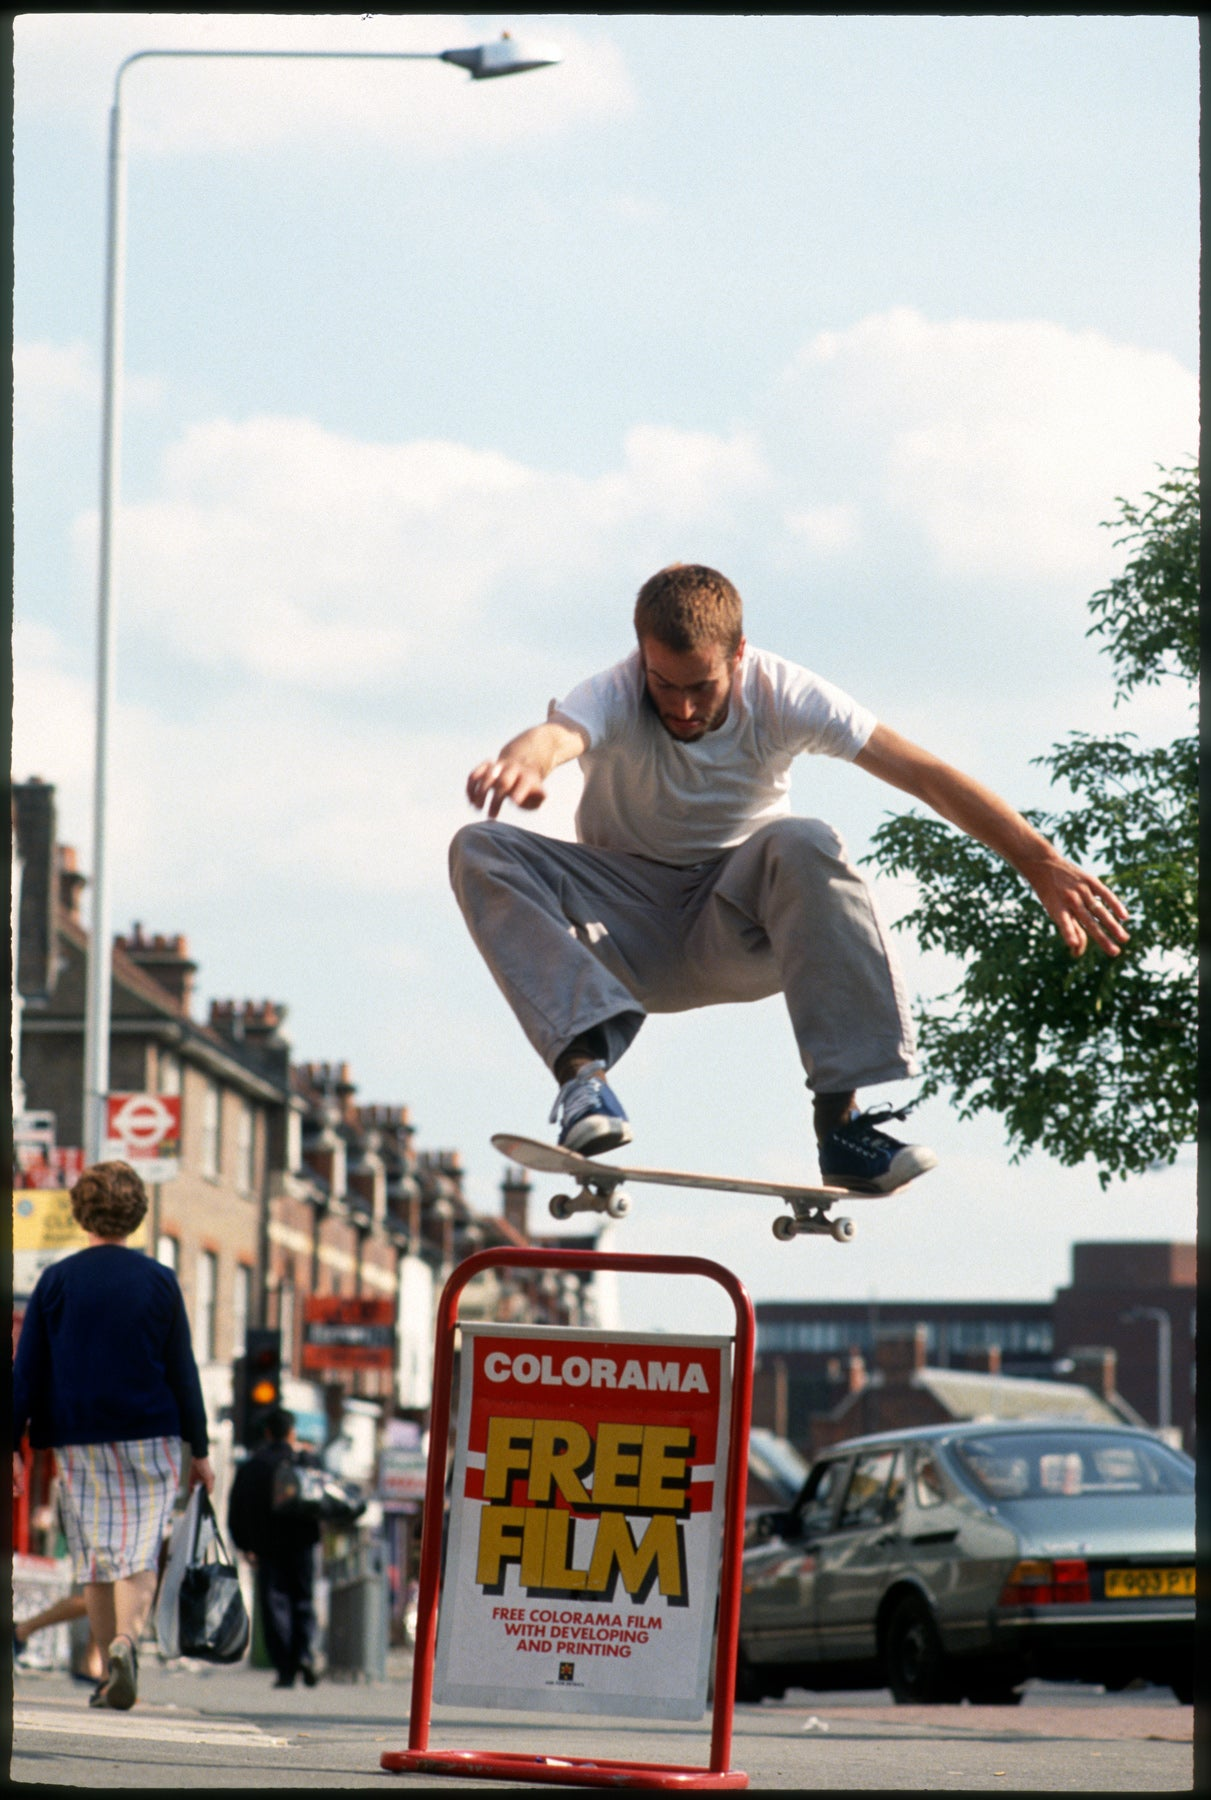 Image of Jason Lee, London 1993, Stero skateboards trip by Tobin Yelland